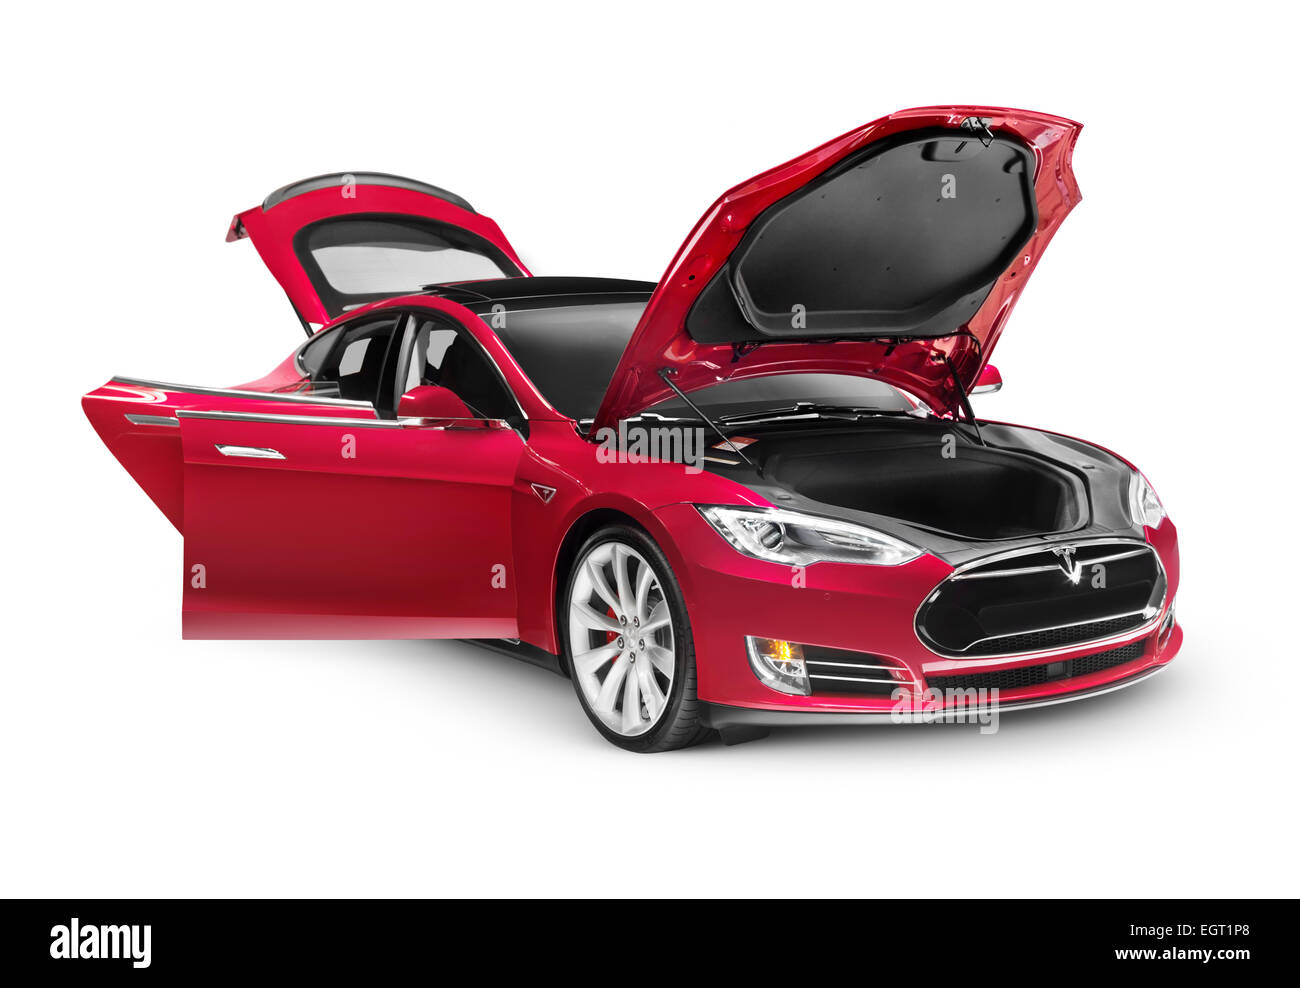 Tesla Model S P85d Electric Car With Open Doors And Hood Isolated On